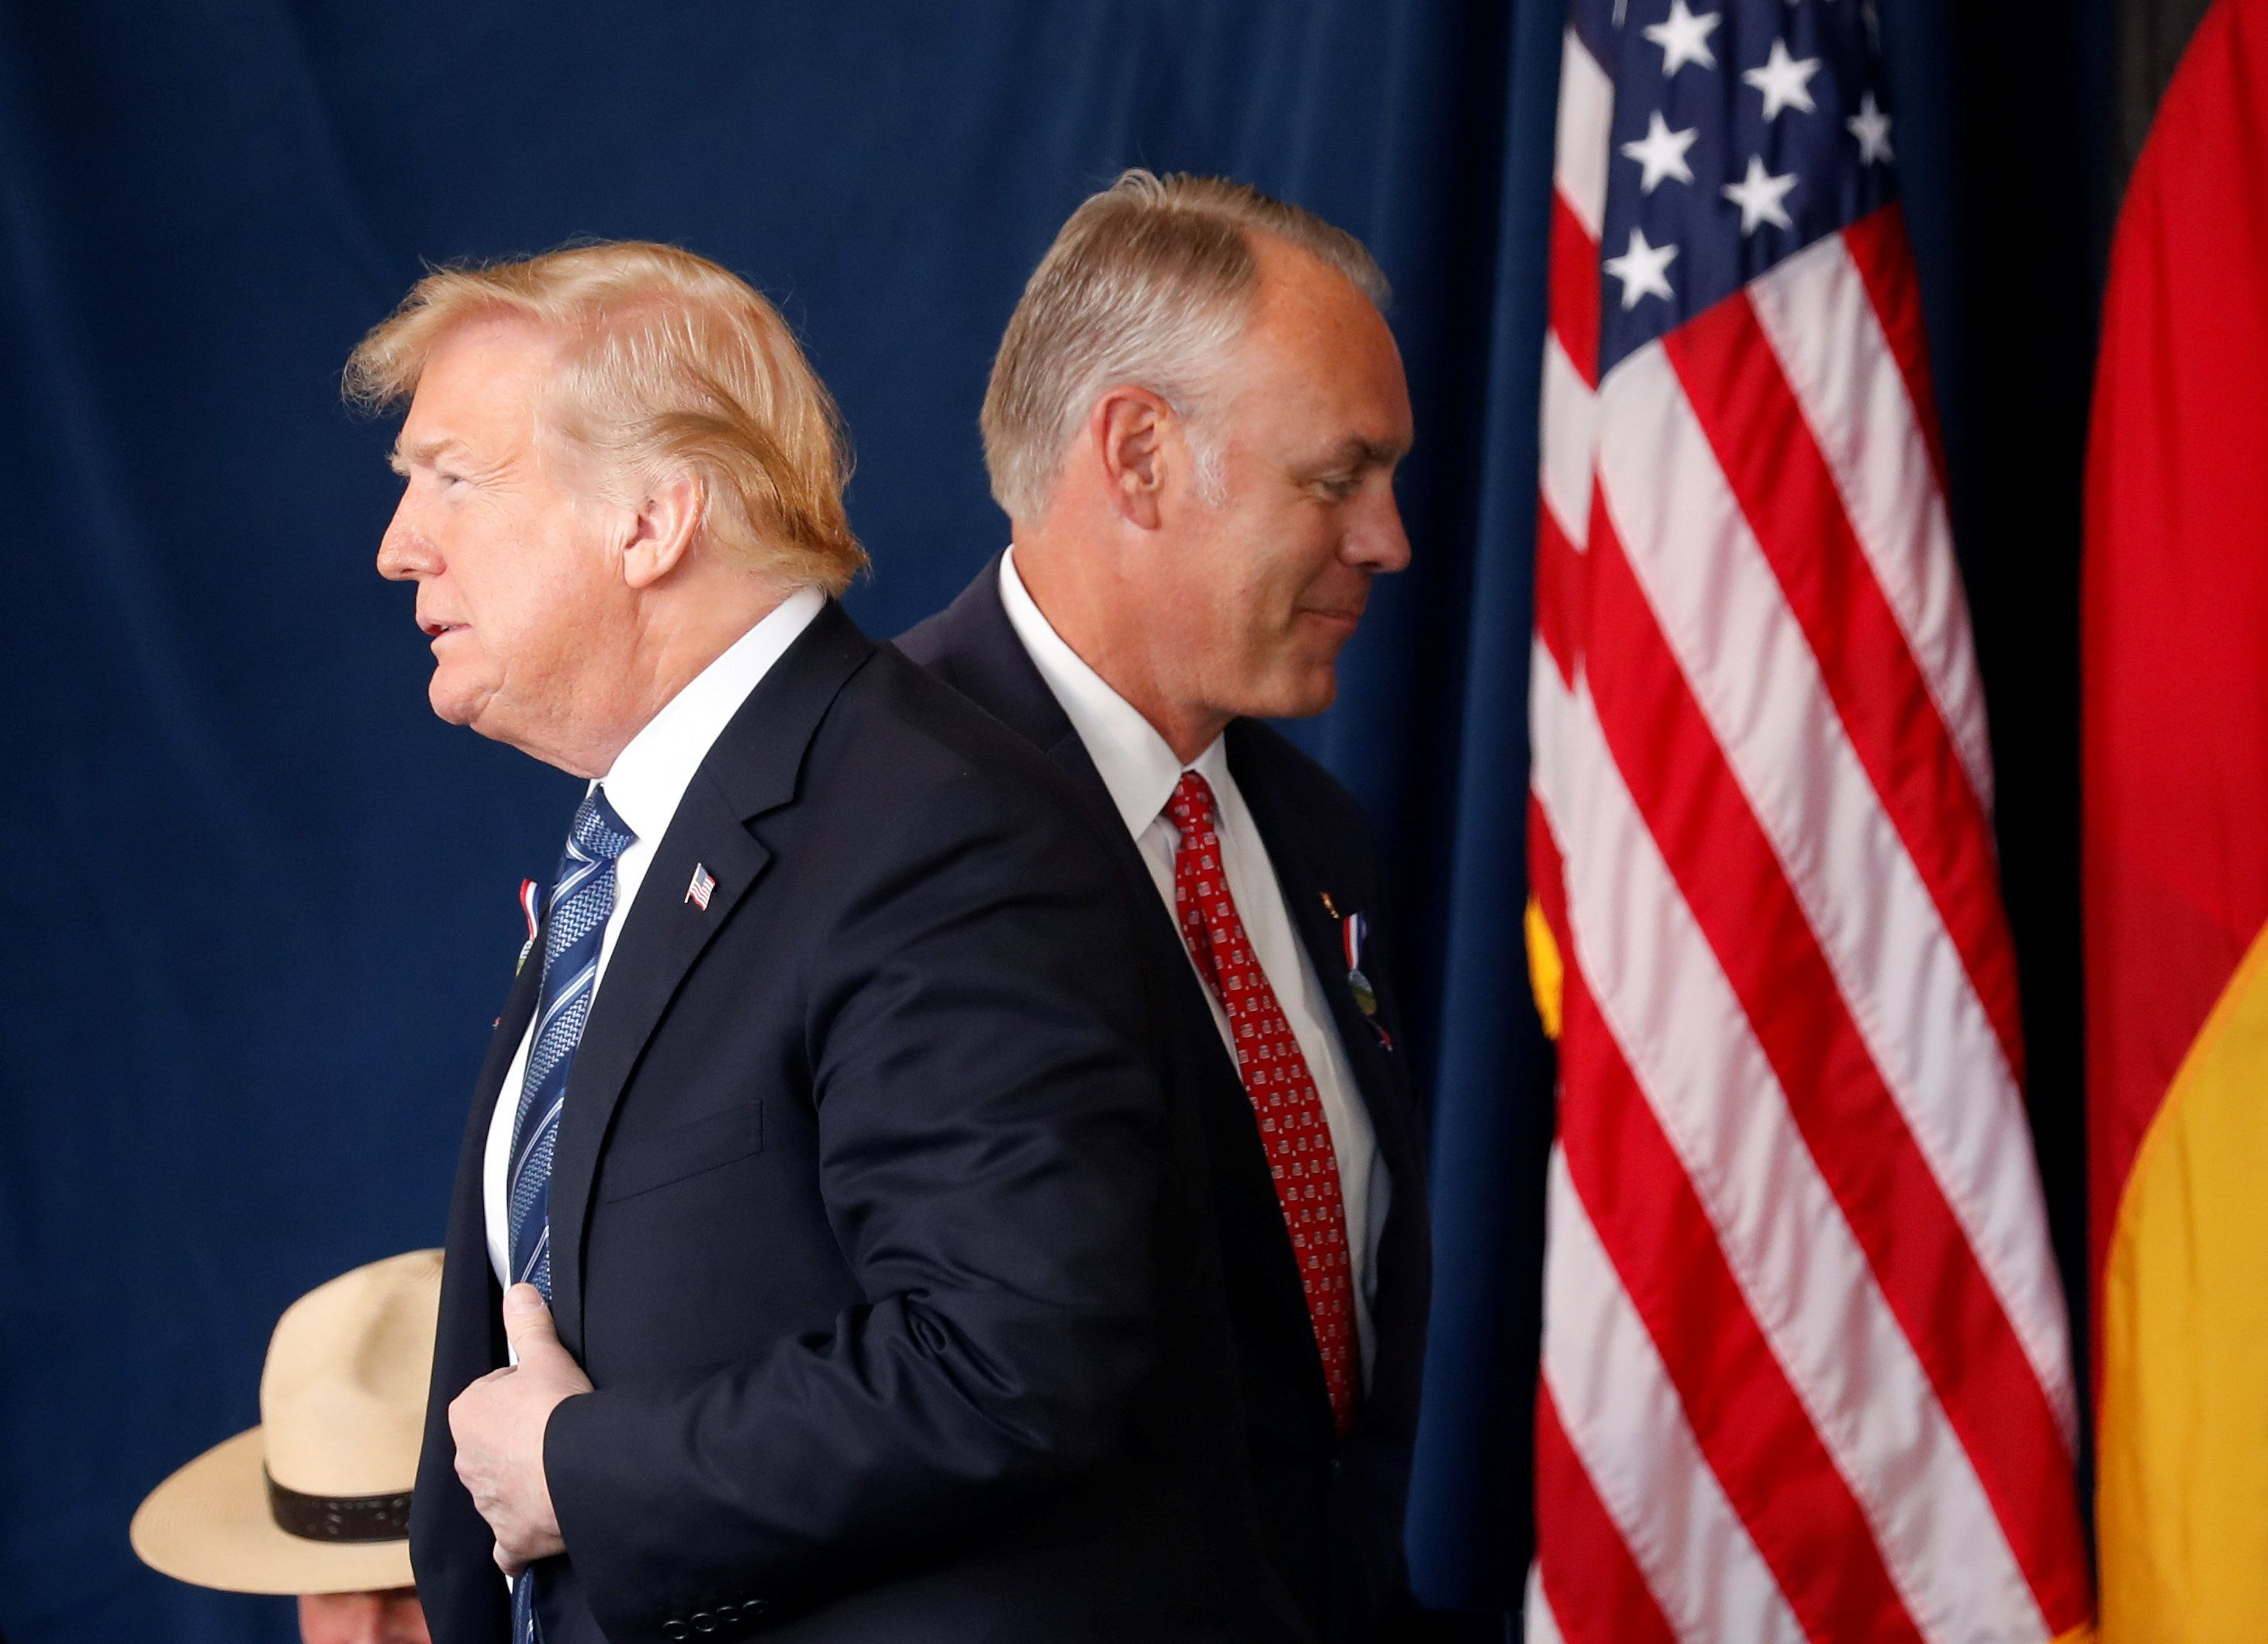 U.S. President Donald Trump walks past Interior Secretary Ryan Zinke as he stands to address the 17th annual September 11 observance at the Flight 93 National Memorial near Shanksville, Pennsylvania. REUTERS/Kevin Lamarque